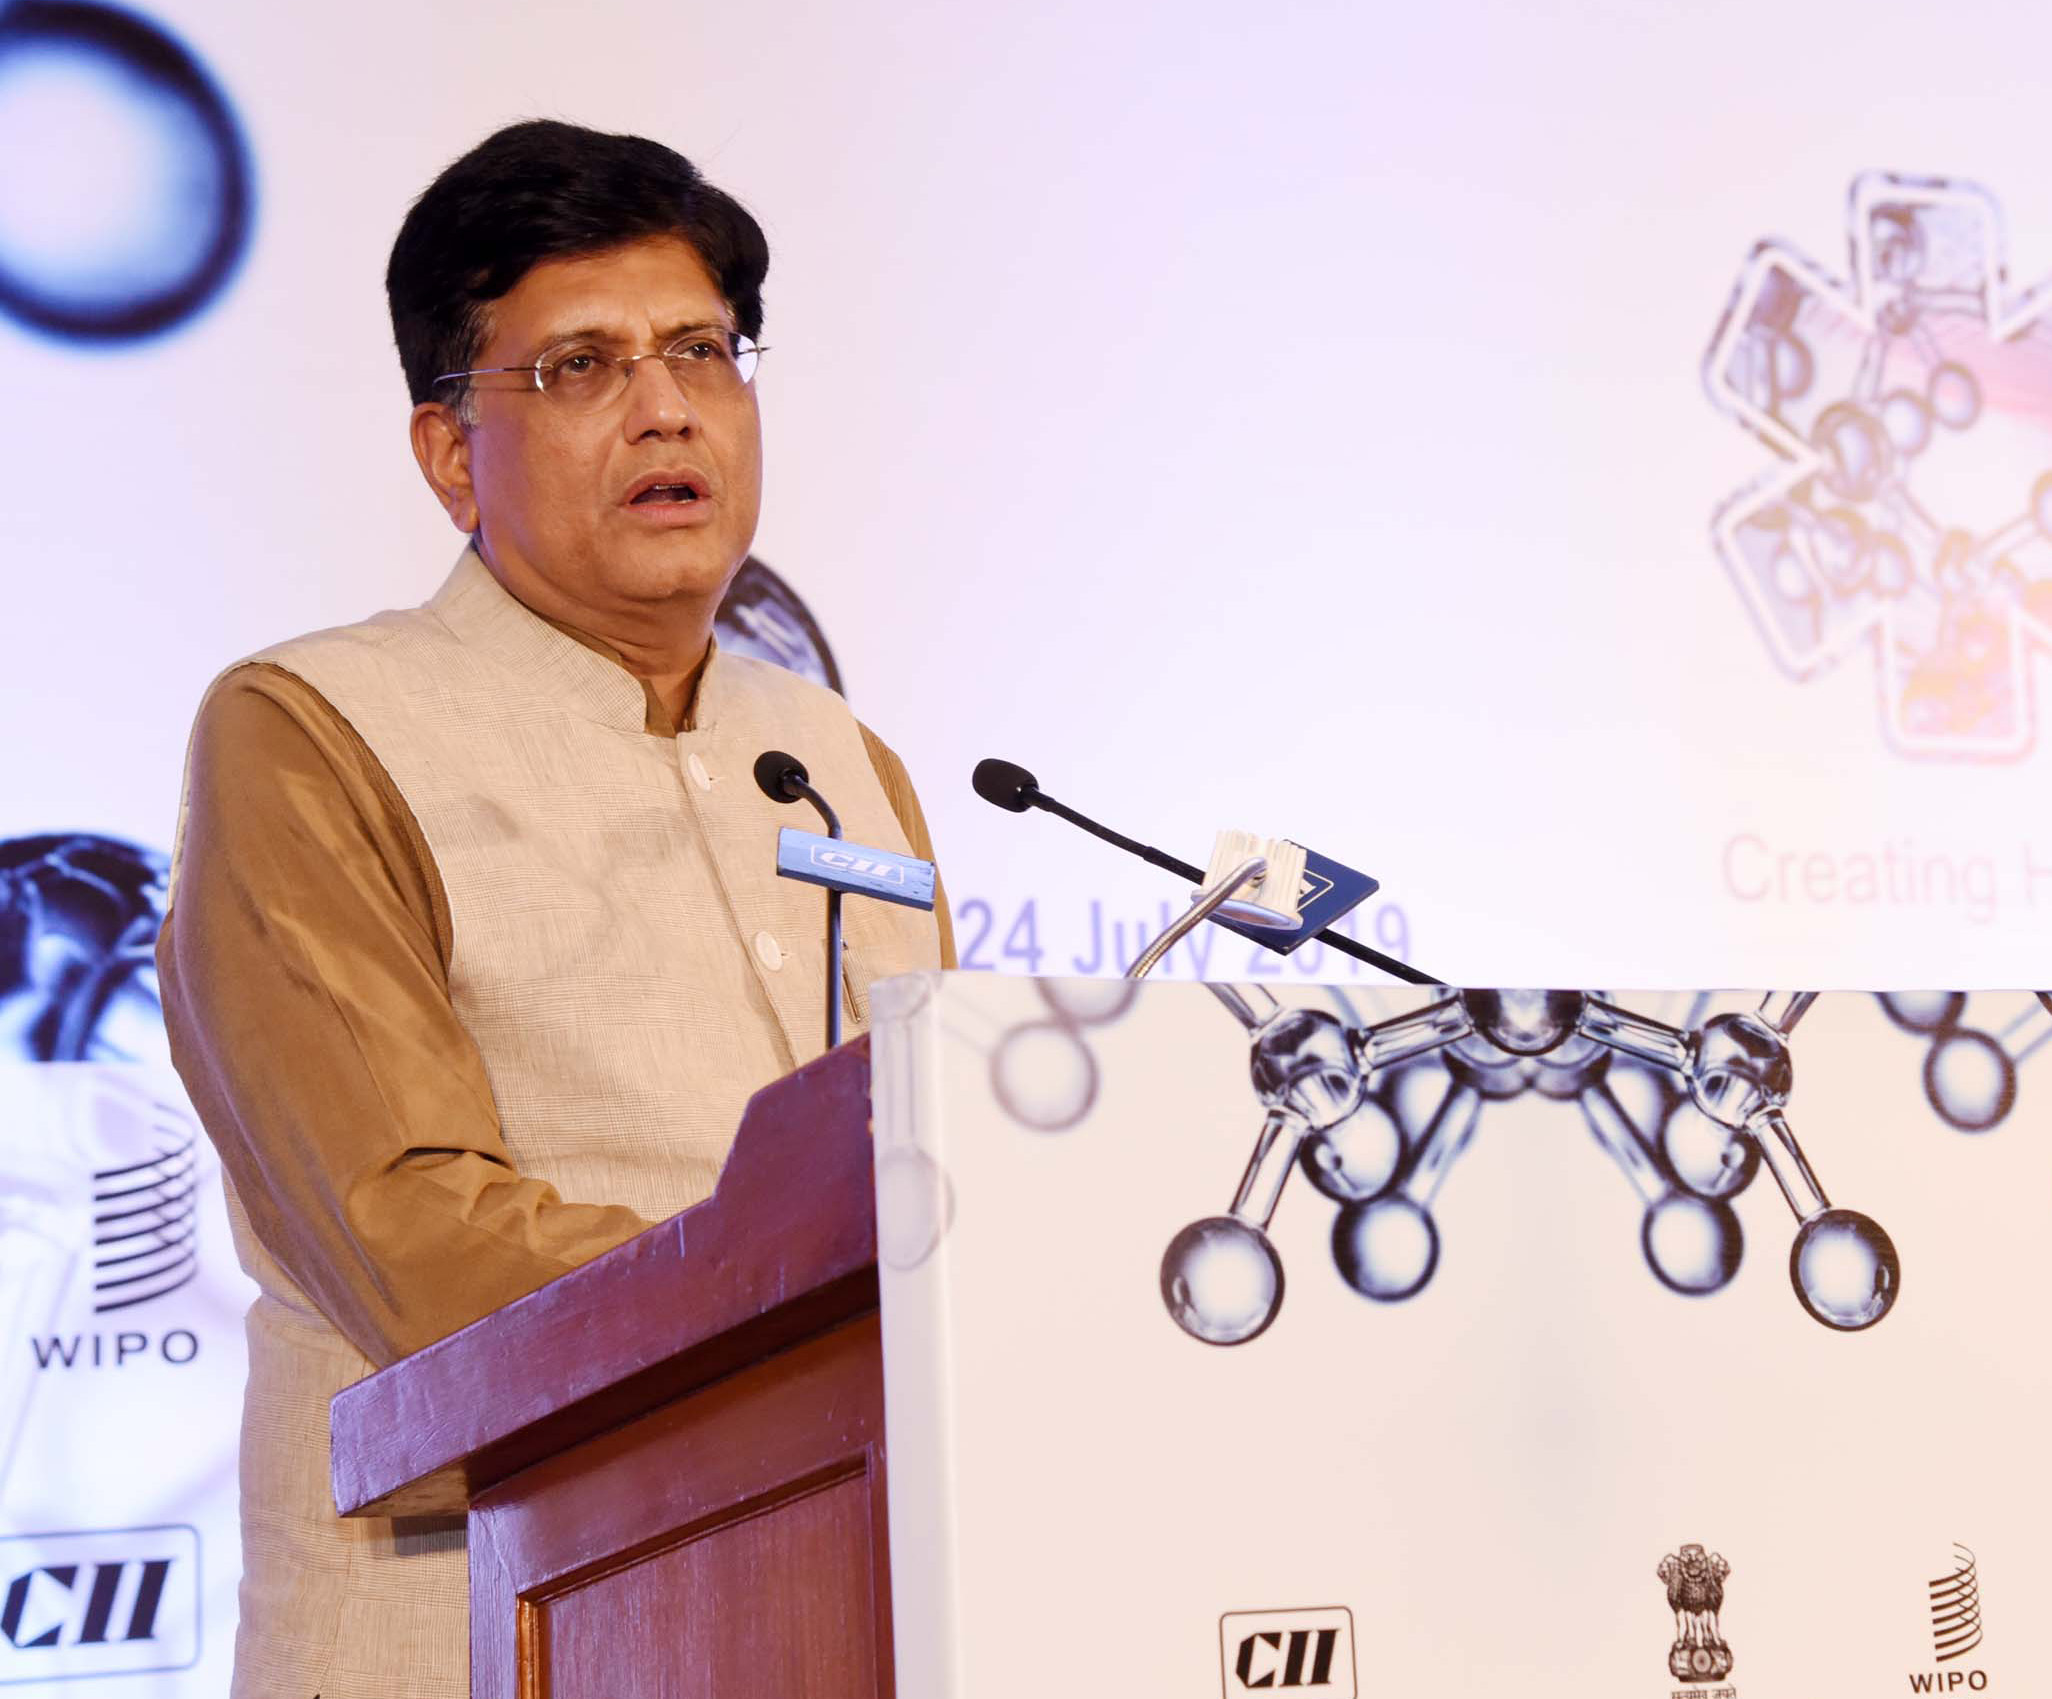 Union Minister of Commerce & Industry and Railways, Piyush Goyal. Photo courtesy: pib.nic.in